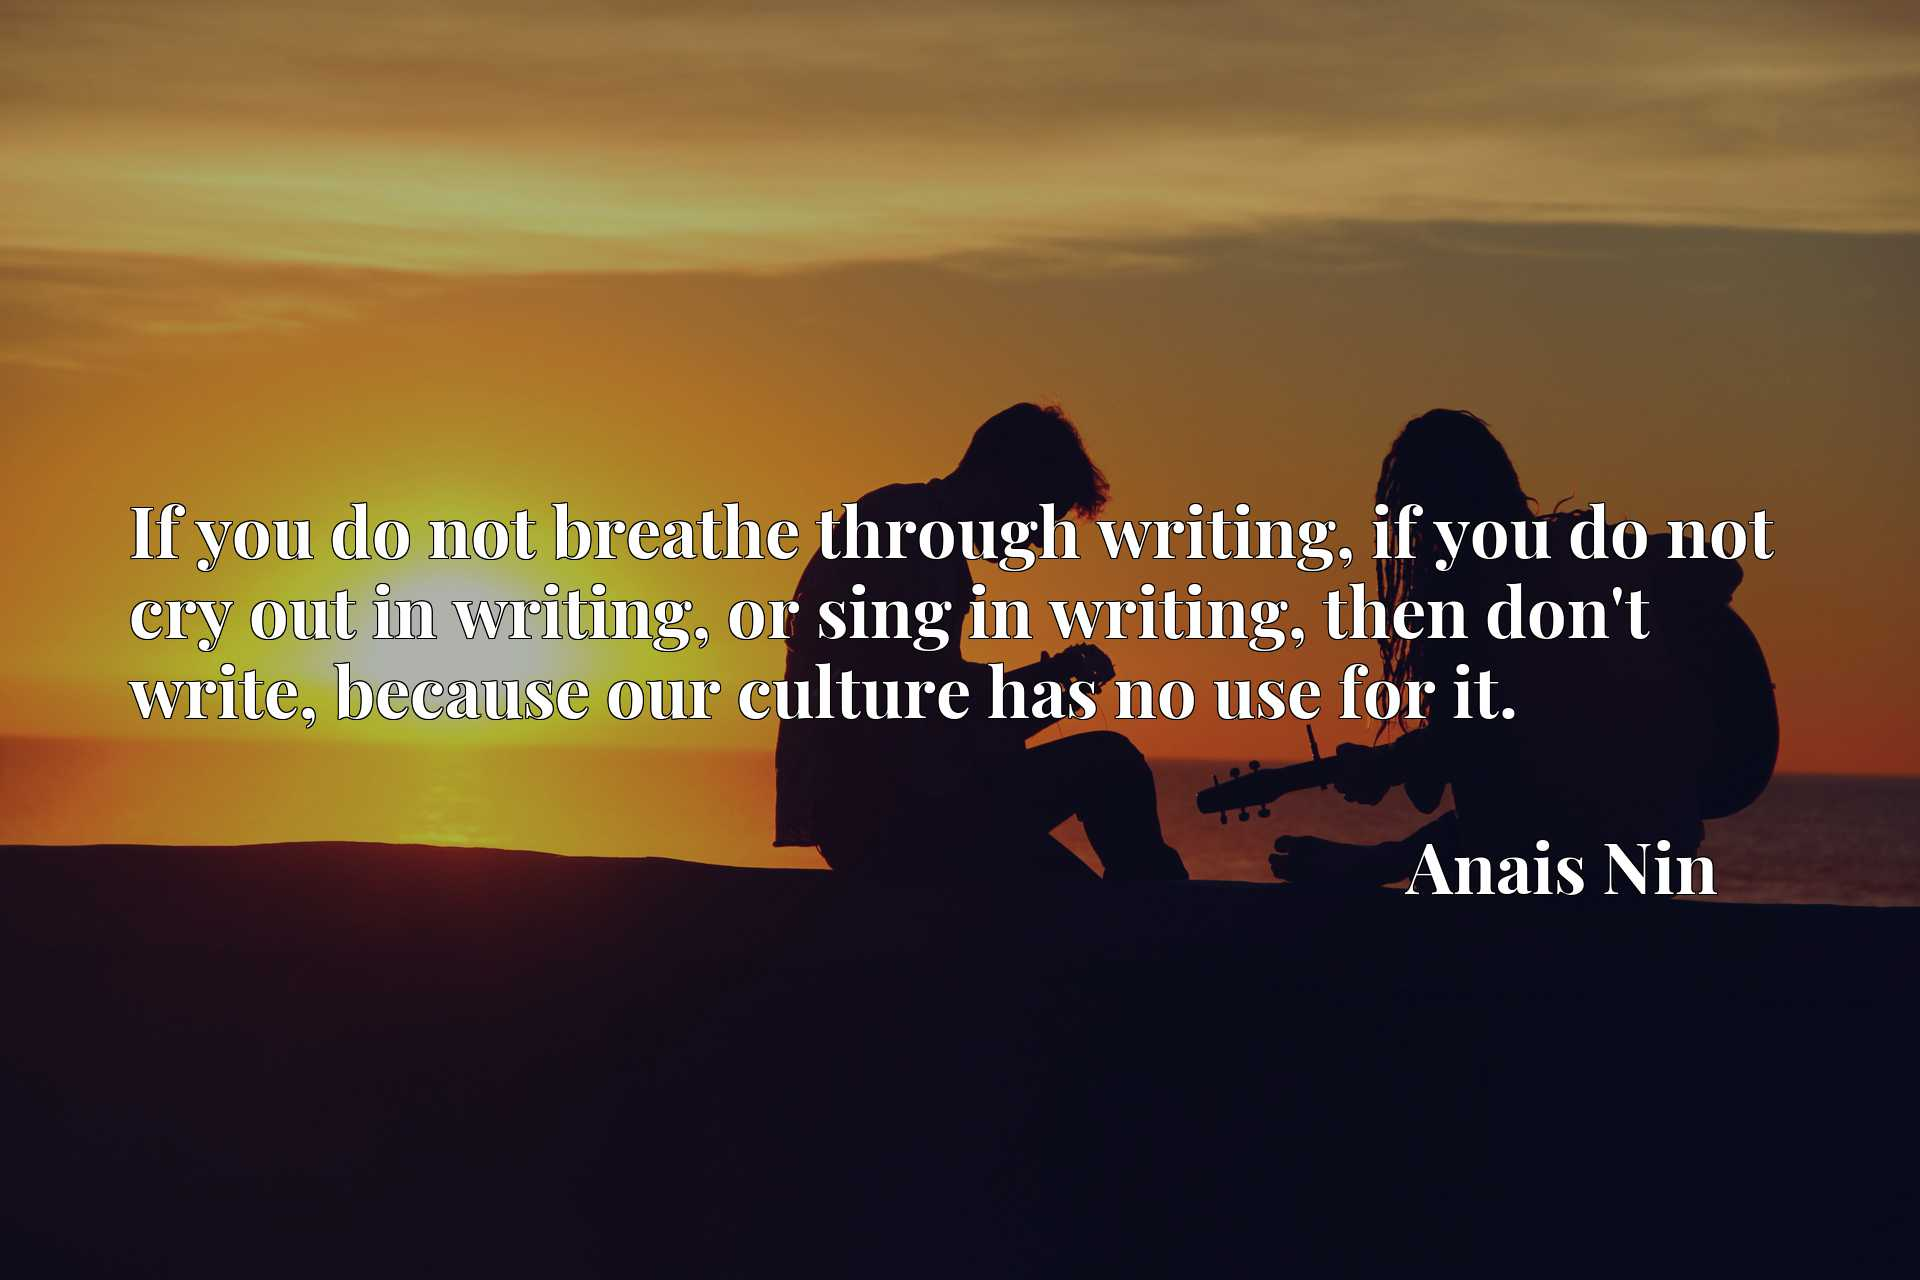 If you do not breathe through writing, if you do not cry out in writing, or sing in writing, then don't write, because our culture has no use for it.